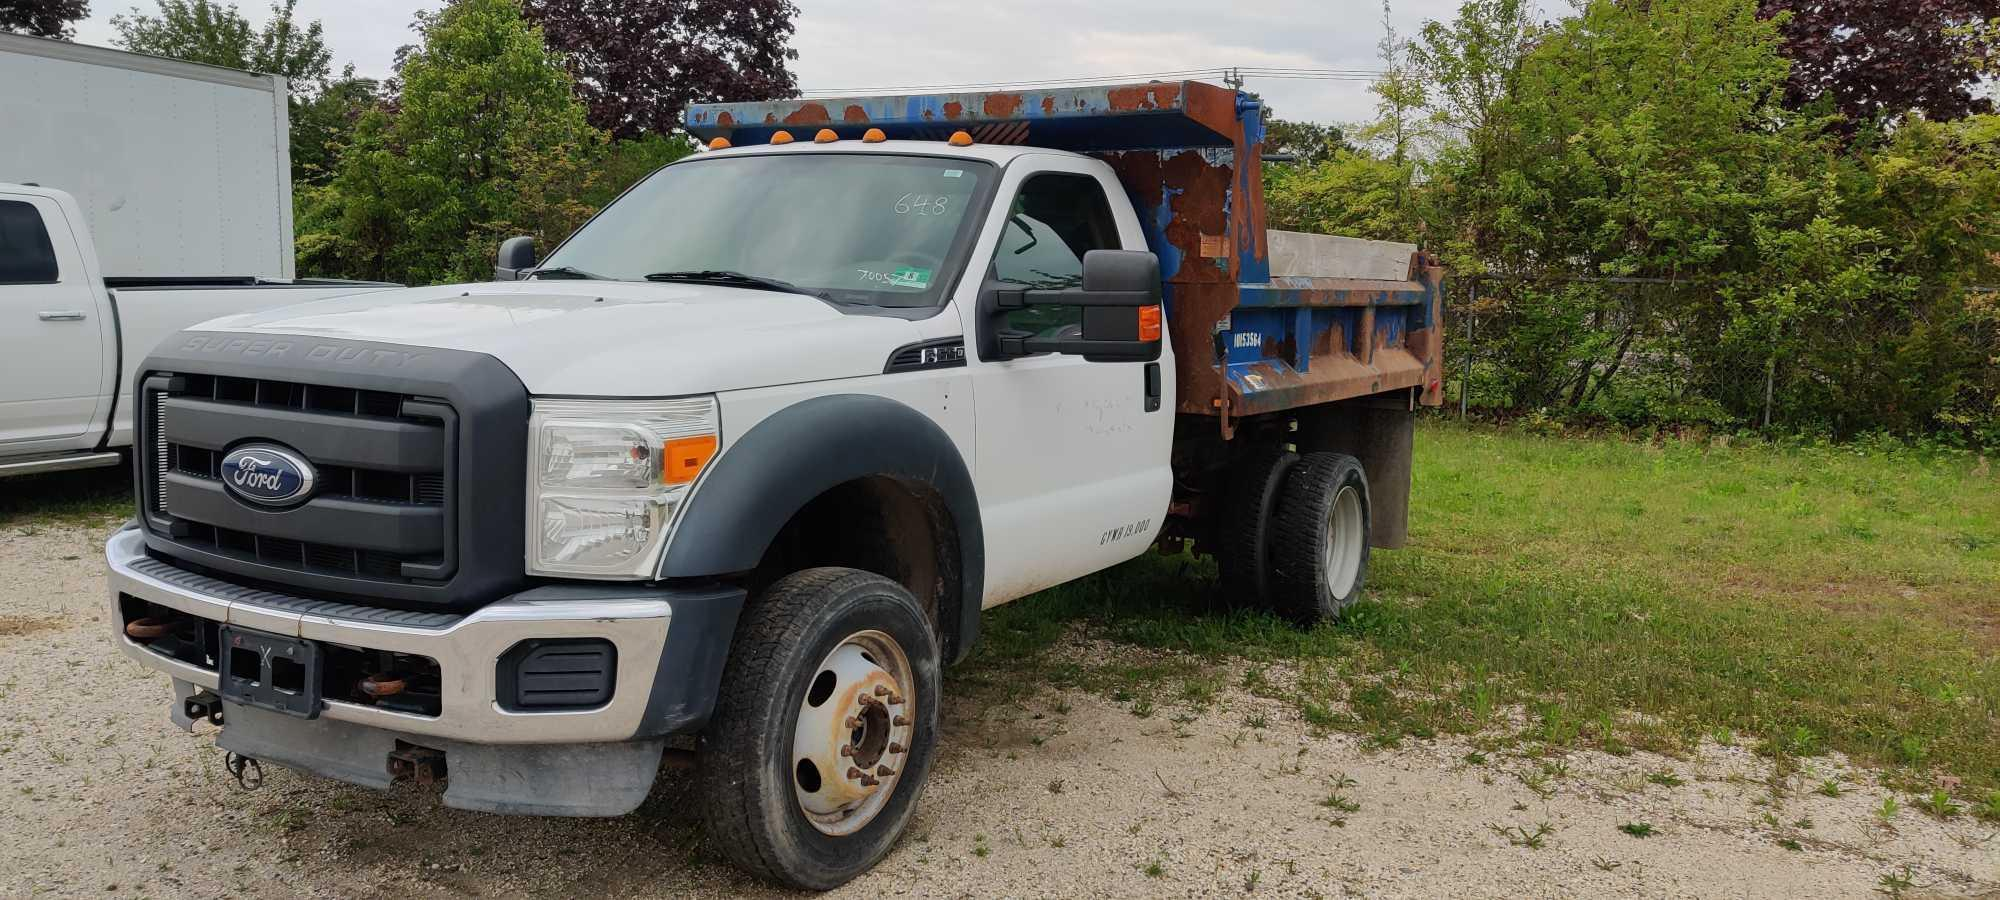 2013 FORD F550 DUMP TRUCK VN:A70057 Powered By Gas